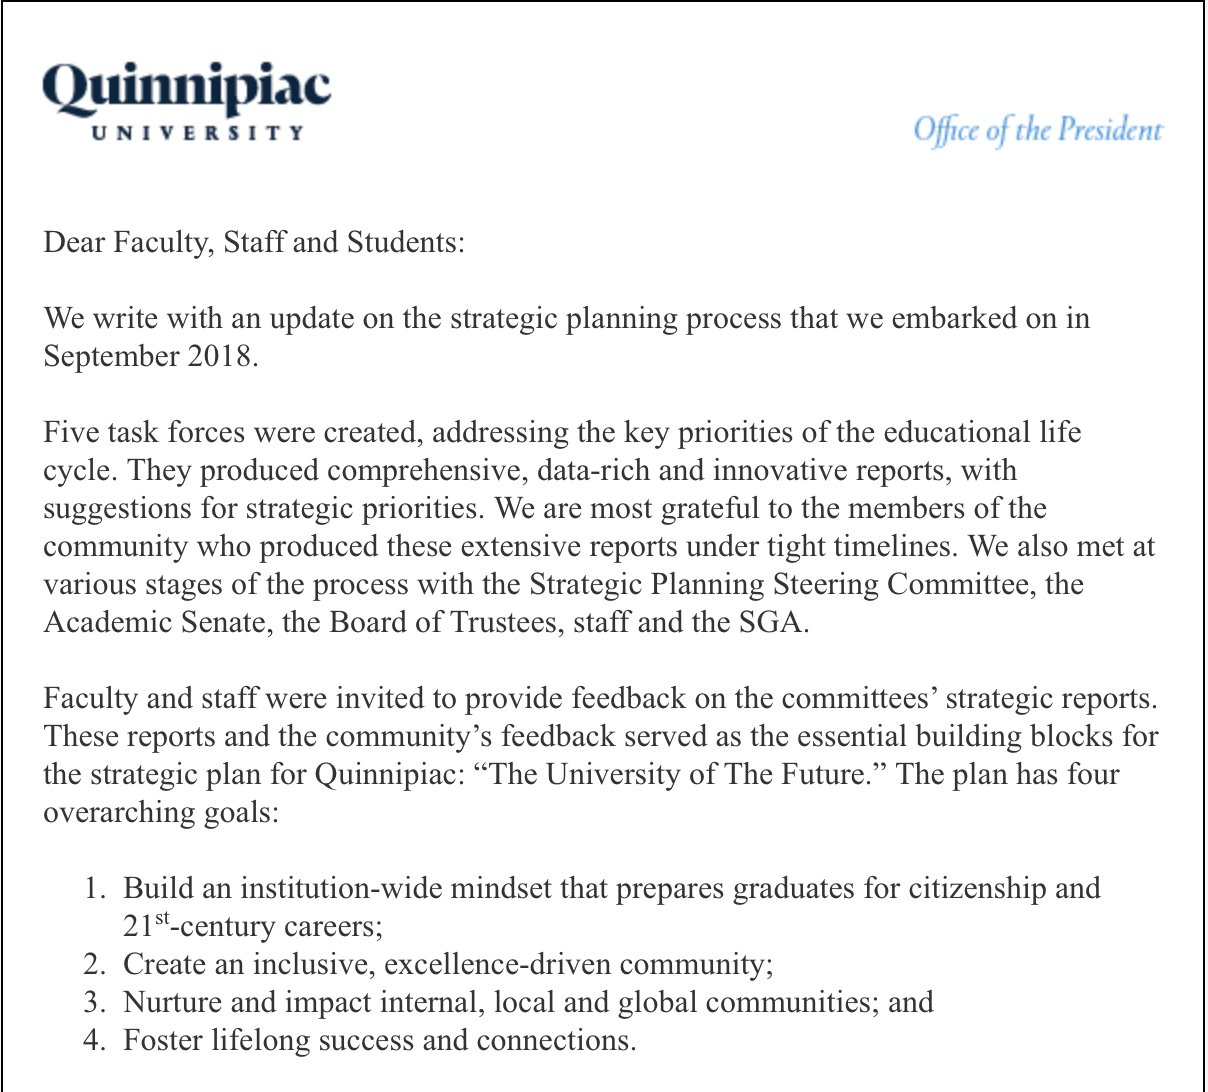 An e-mail from Olian sent to faculty, staff and students on Jan. 29 regarding the strategic plan.